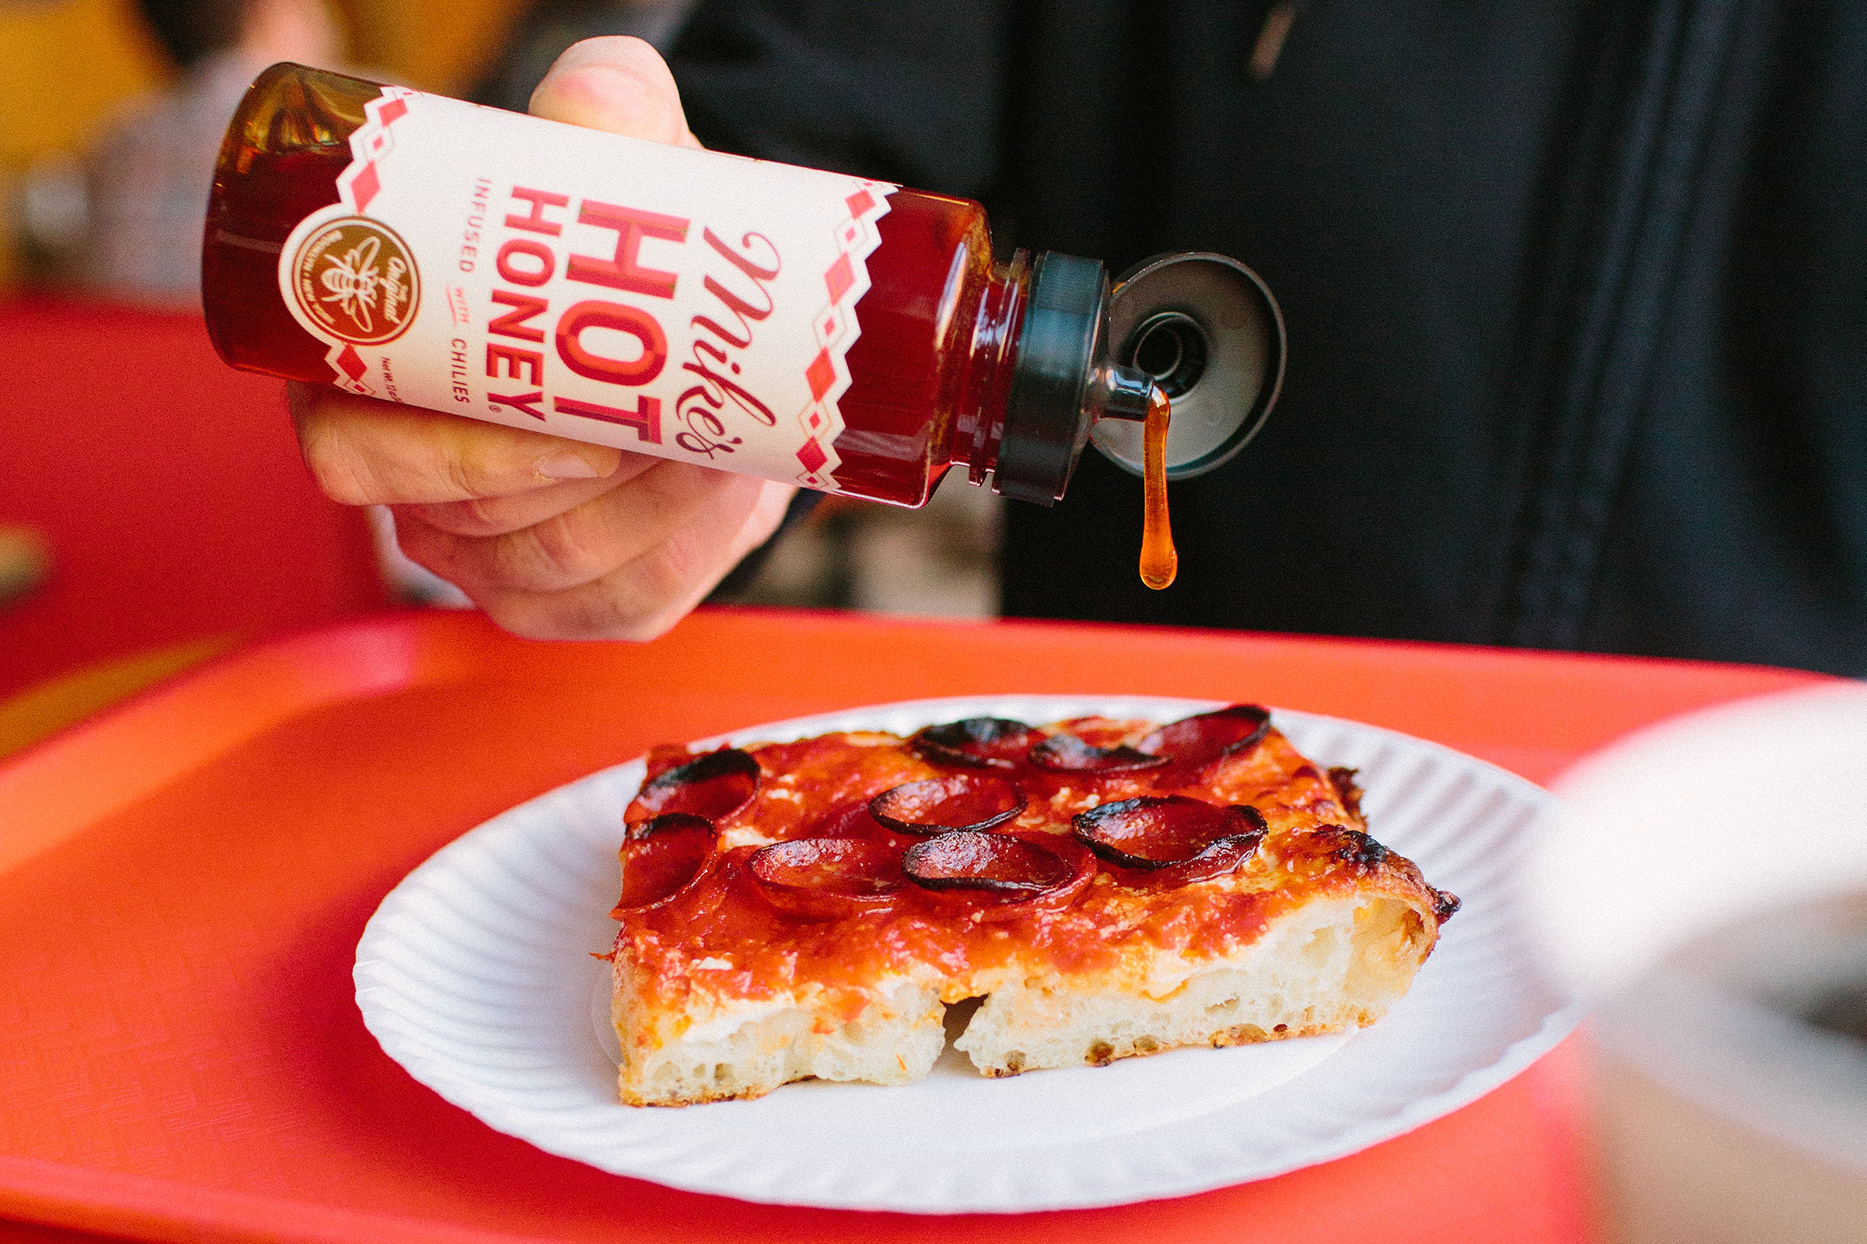 bottle of mike's hot honey getting drizzled on pizza